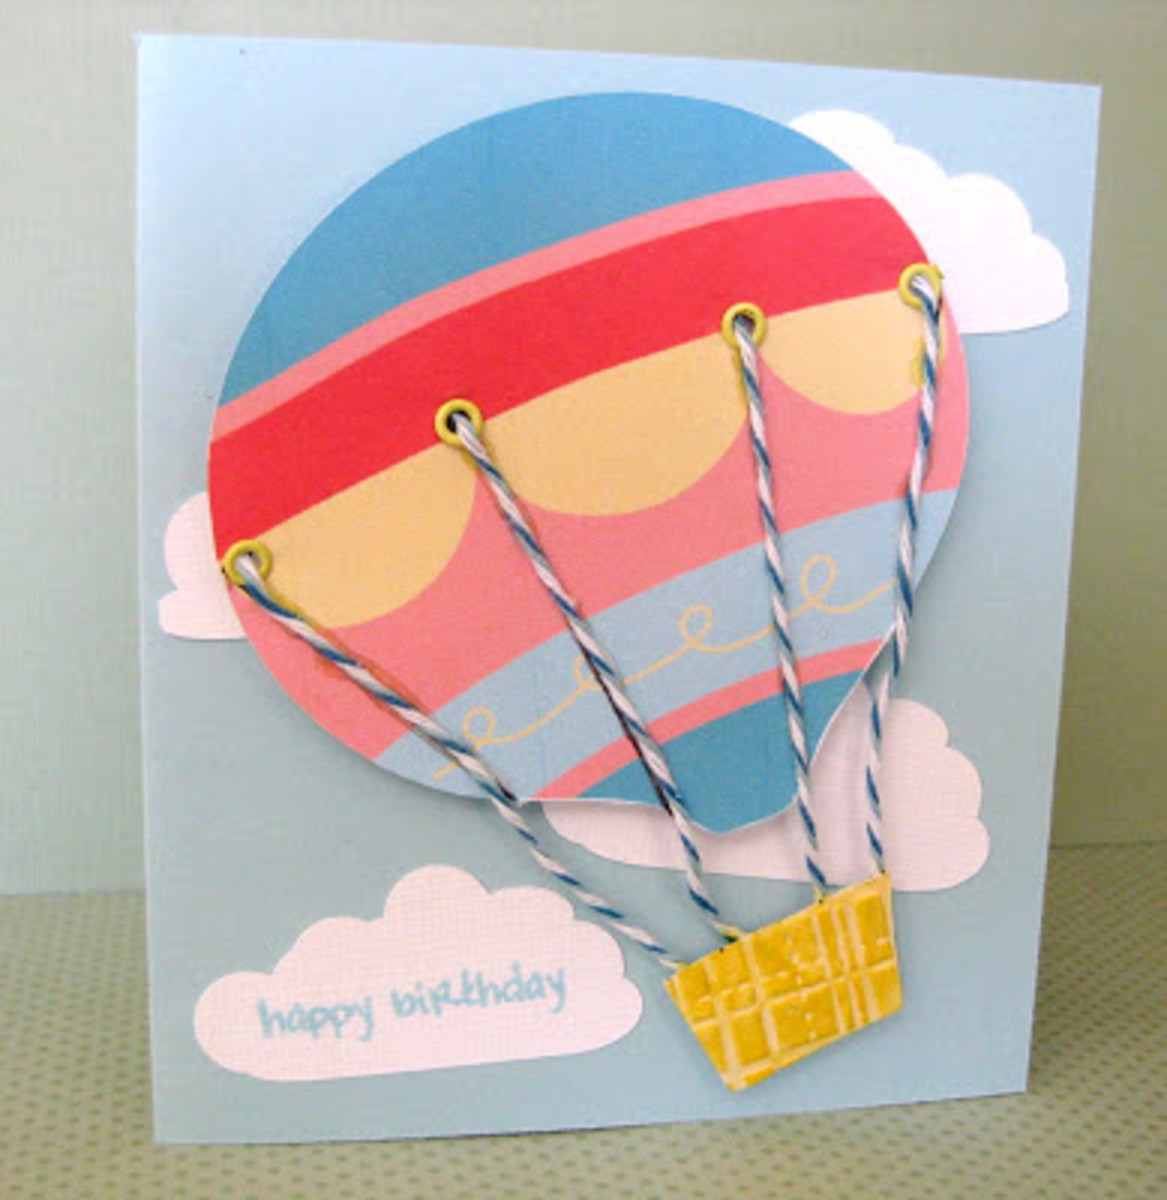 Homemade hot air balloon greeting cards ideas birthday for 3d christmas cards to make at home